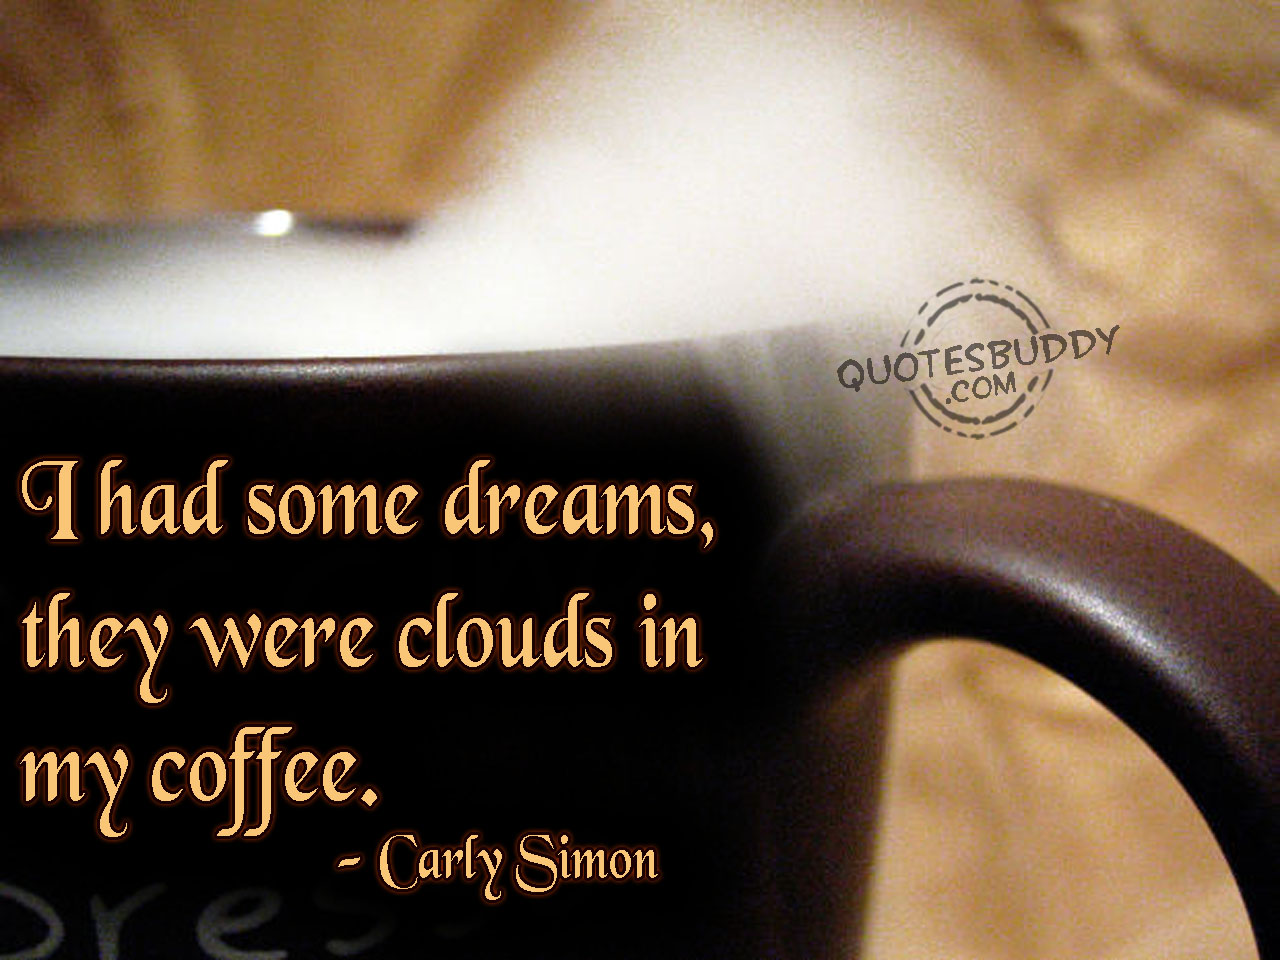 Funny Wallpapers: Coffee quotes, coffee quote, coffee quotes ...